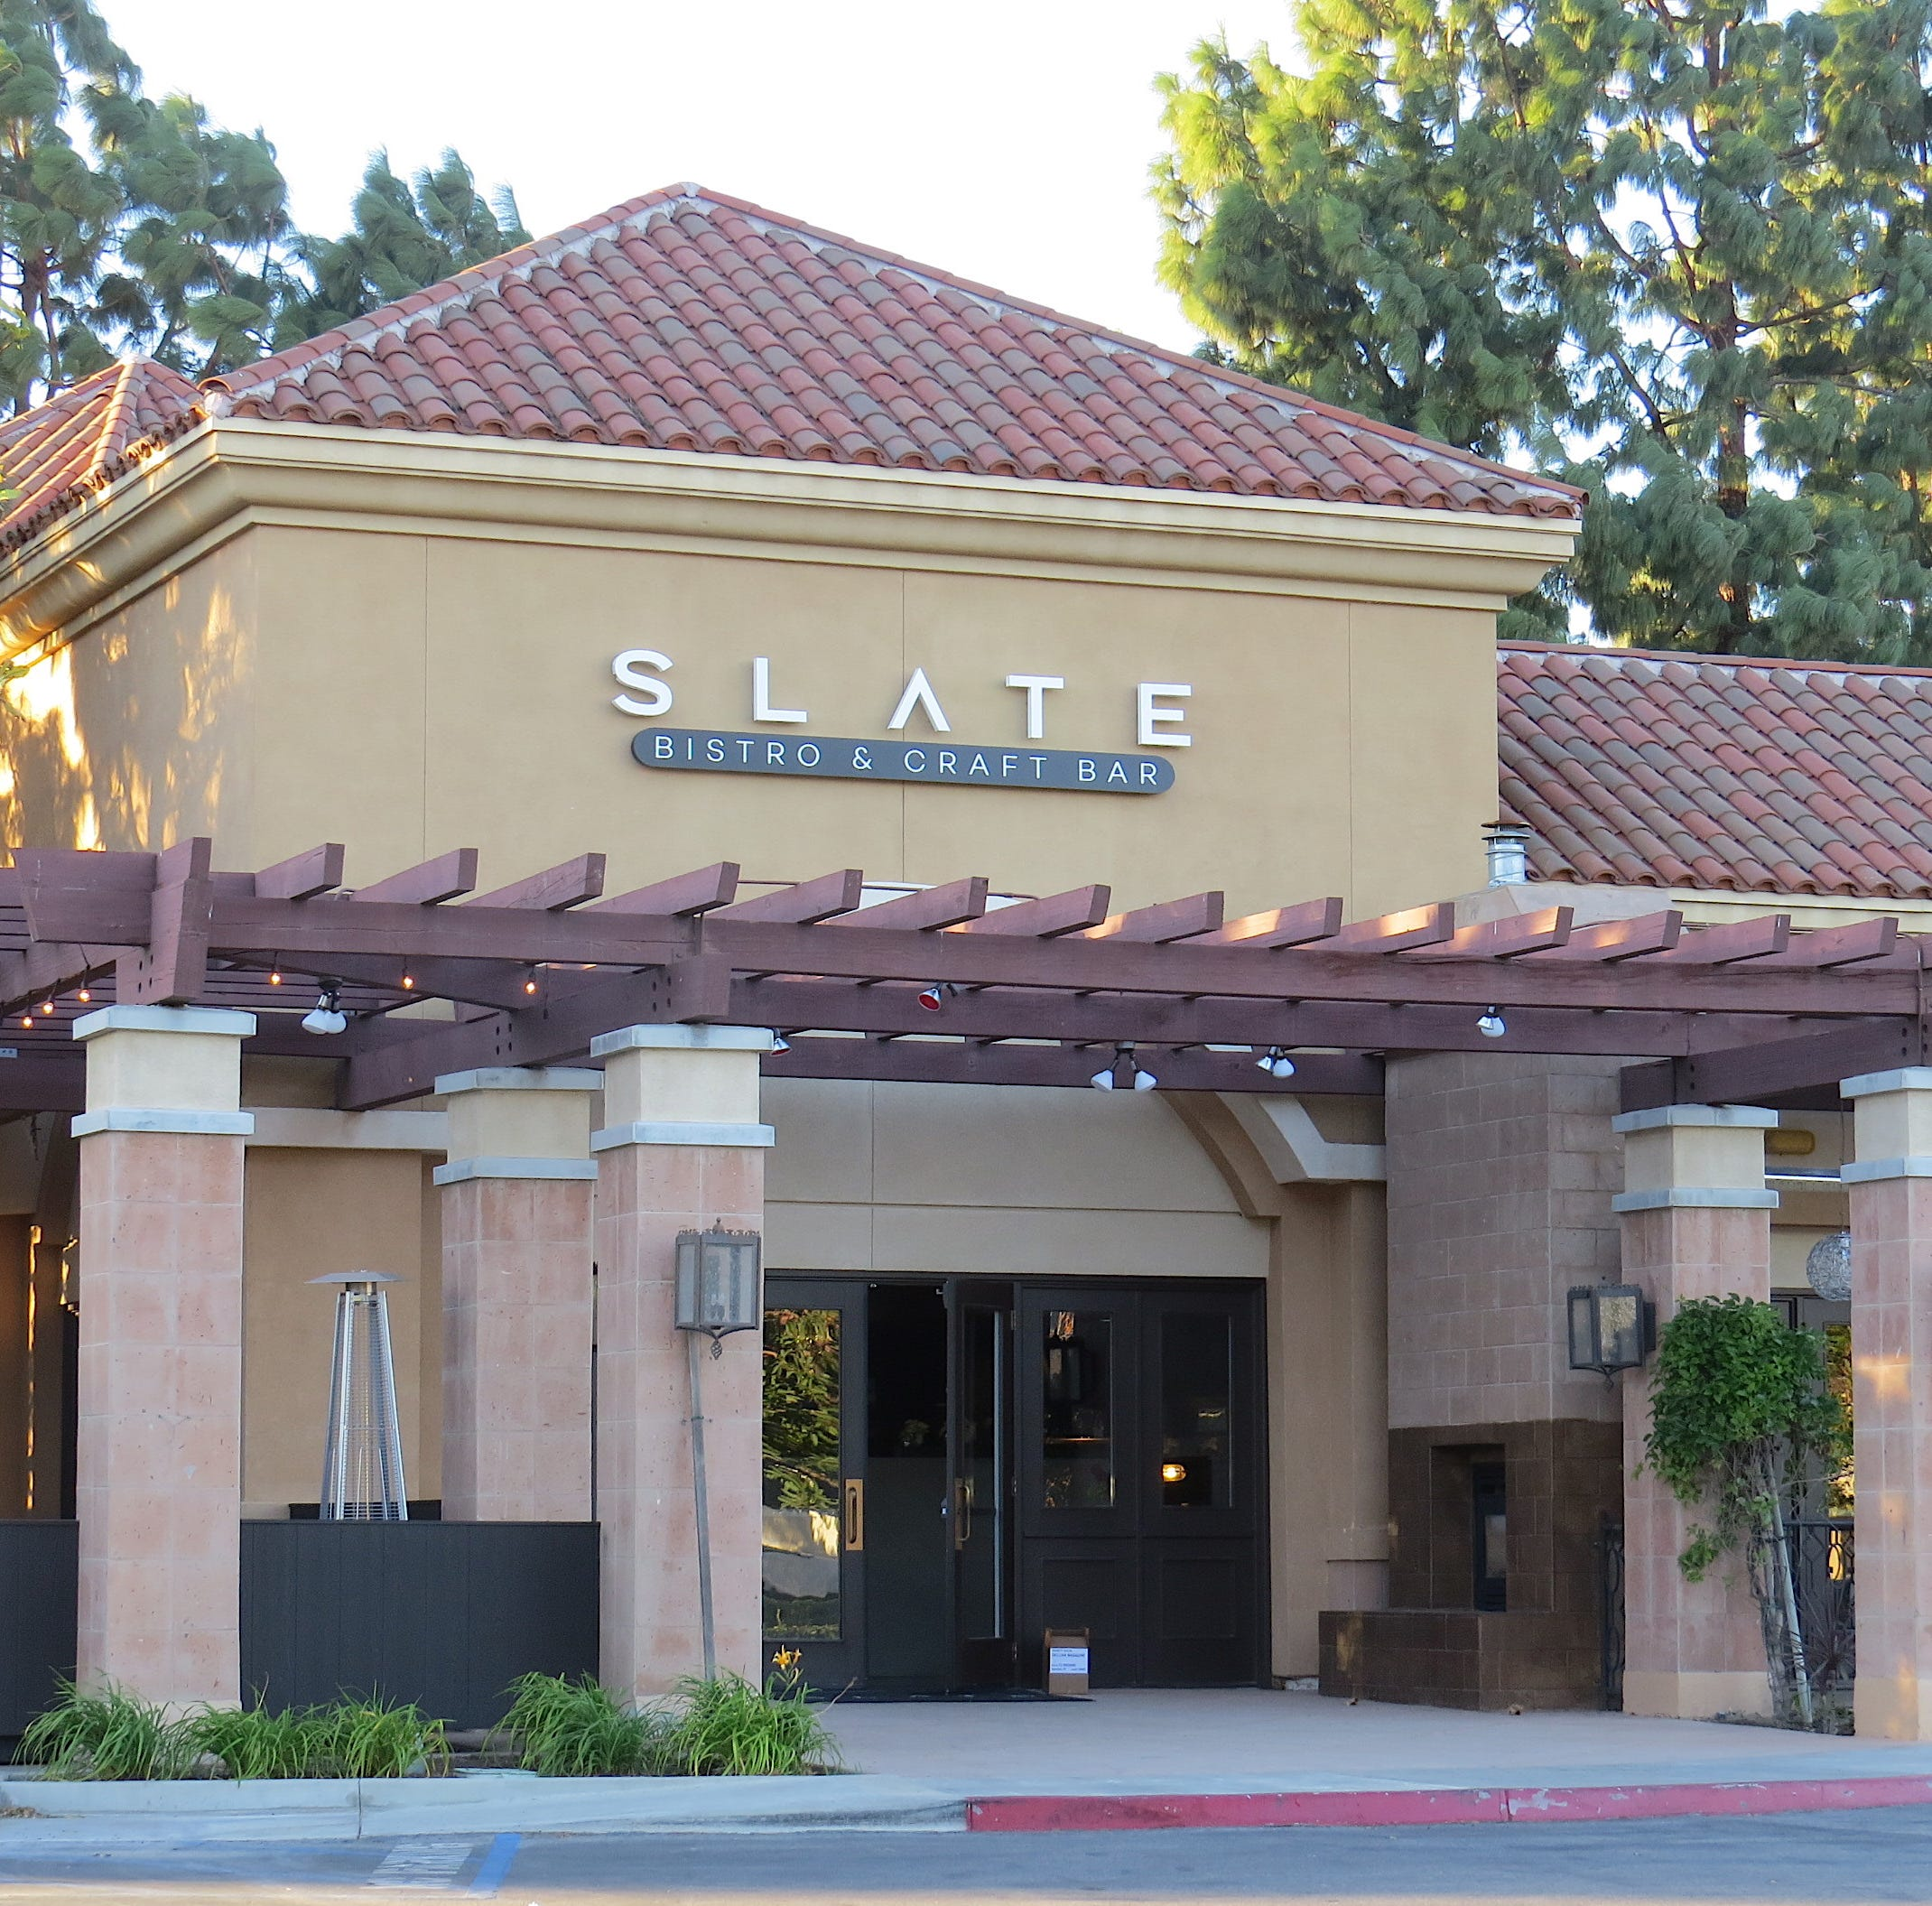 Slate Bistro & Craft Bar is now open at the Camarillo address originally occupied by Safire American Bistro.